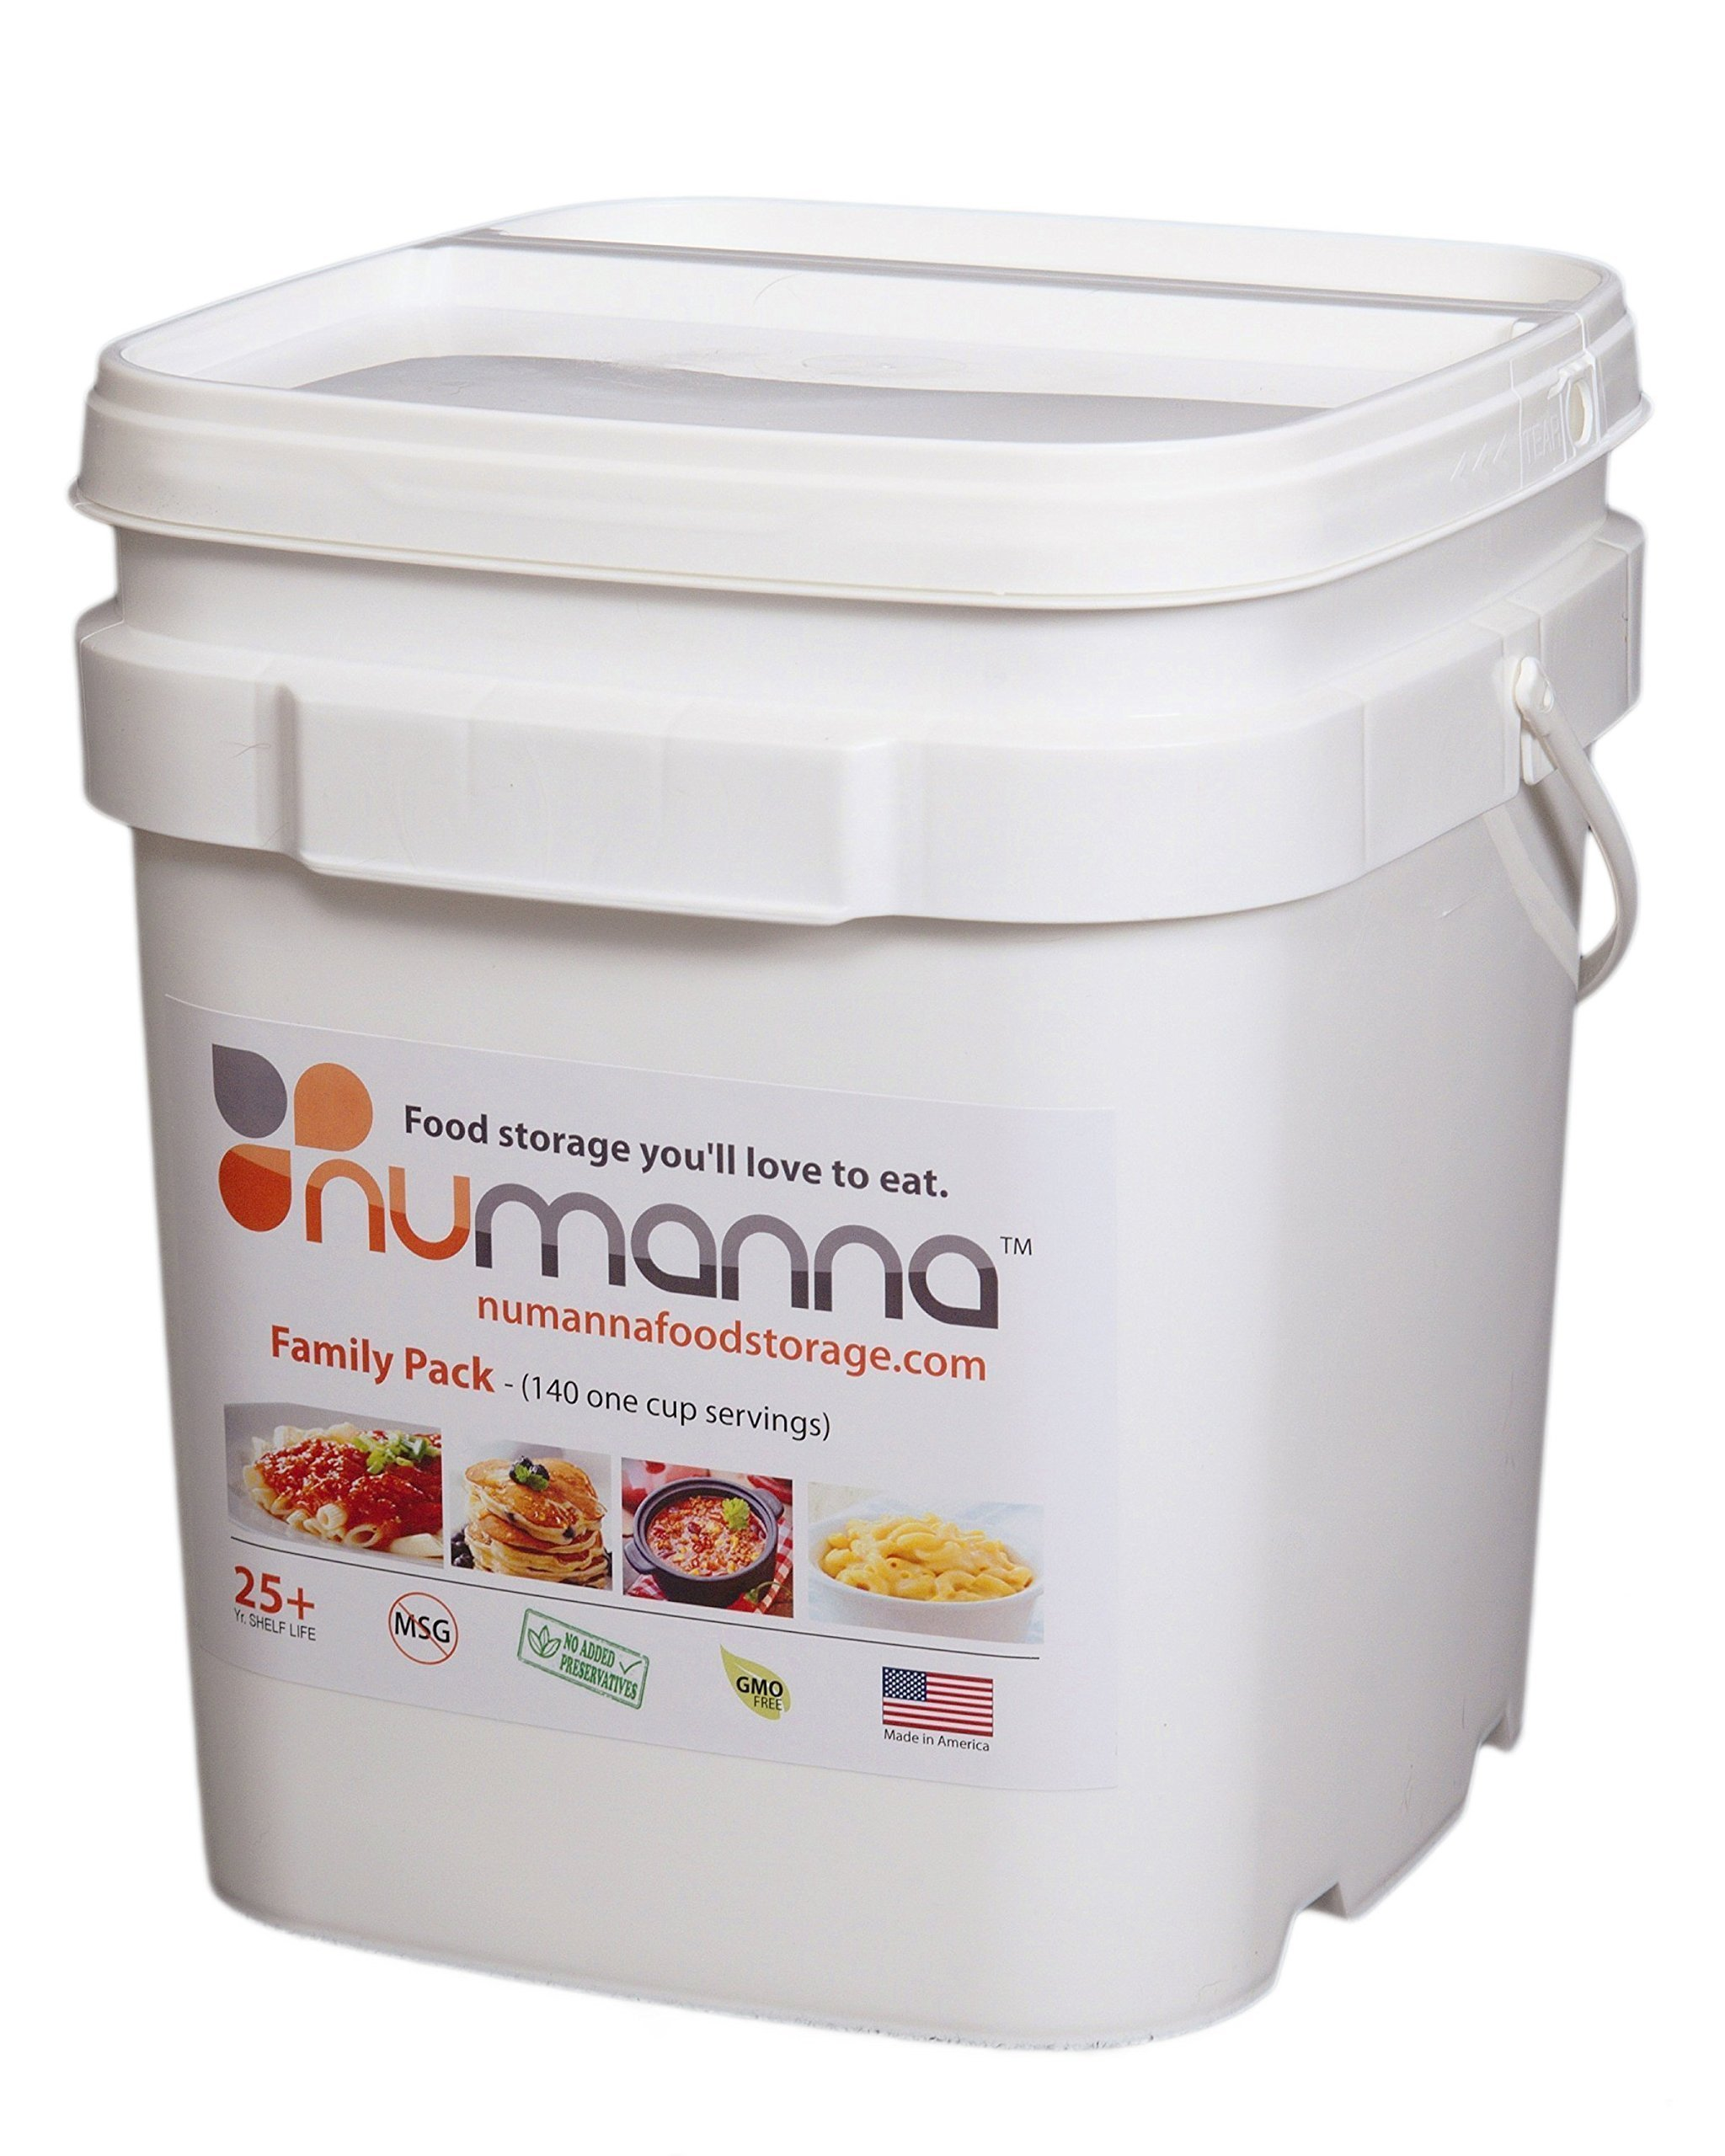 NuManna INT-NMFP 144 Meals, Emergency Survival Food Storage Kit, Separate Rations, in a Bucket, 25 Plus Year Shelf Life, GMO-Free by NuManna